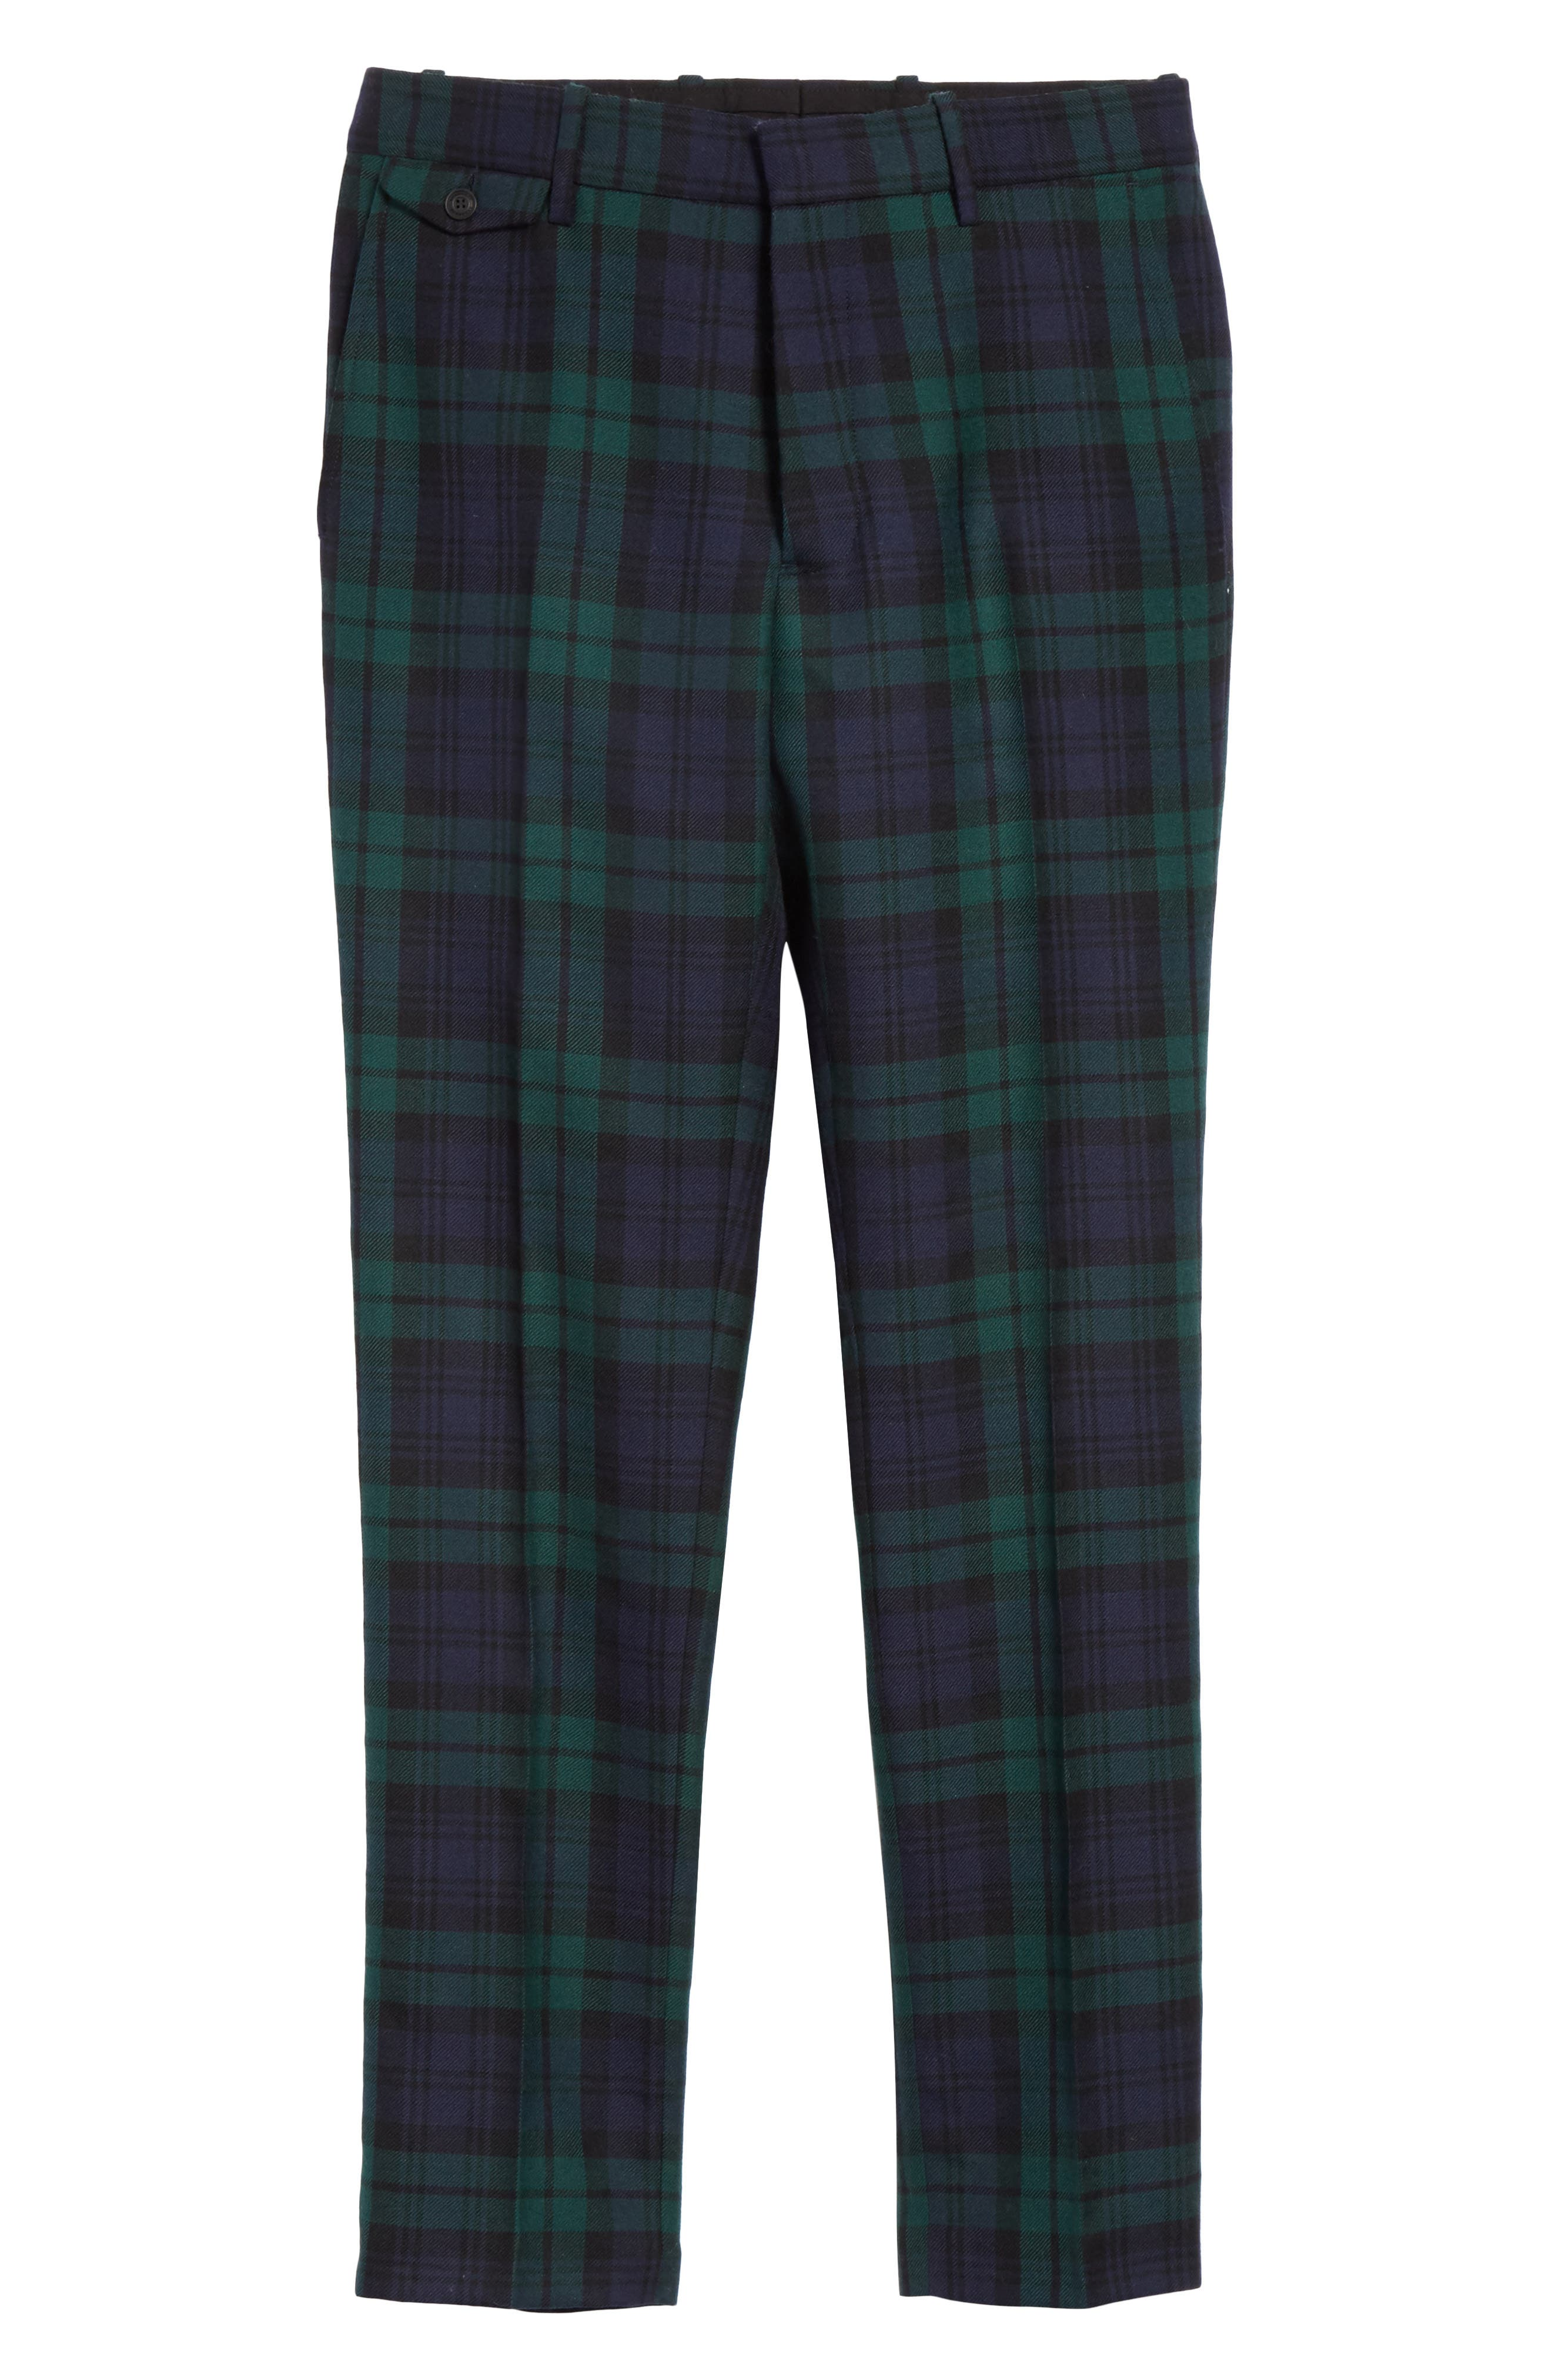 BURBERRY,                             Serpentine Check Wool Pants,                             Alternate thumbnail 6, color,                             410